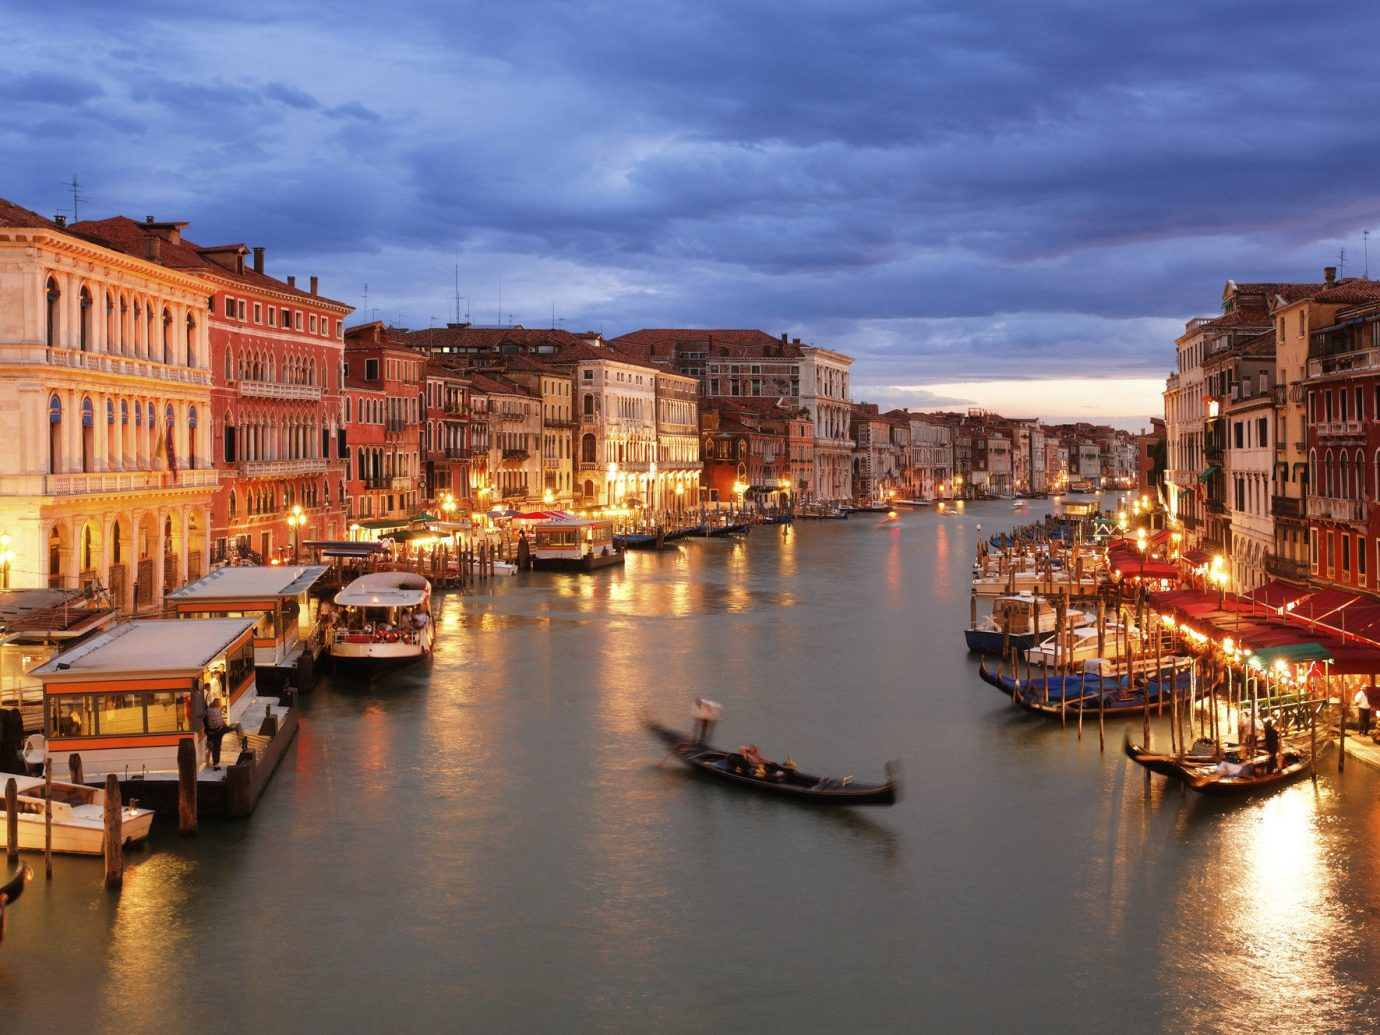 Hotels building sky scene water outdoor Boat Harbor geographical feature Town body of water cityscape Canal River waterway evening channel full reflection Sea dusk vehicle Sunset several